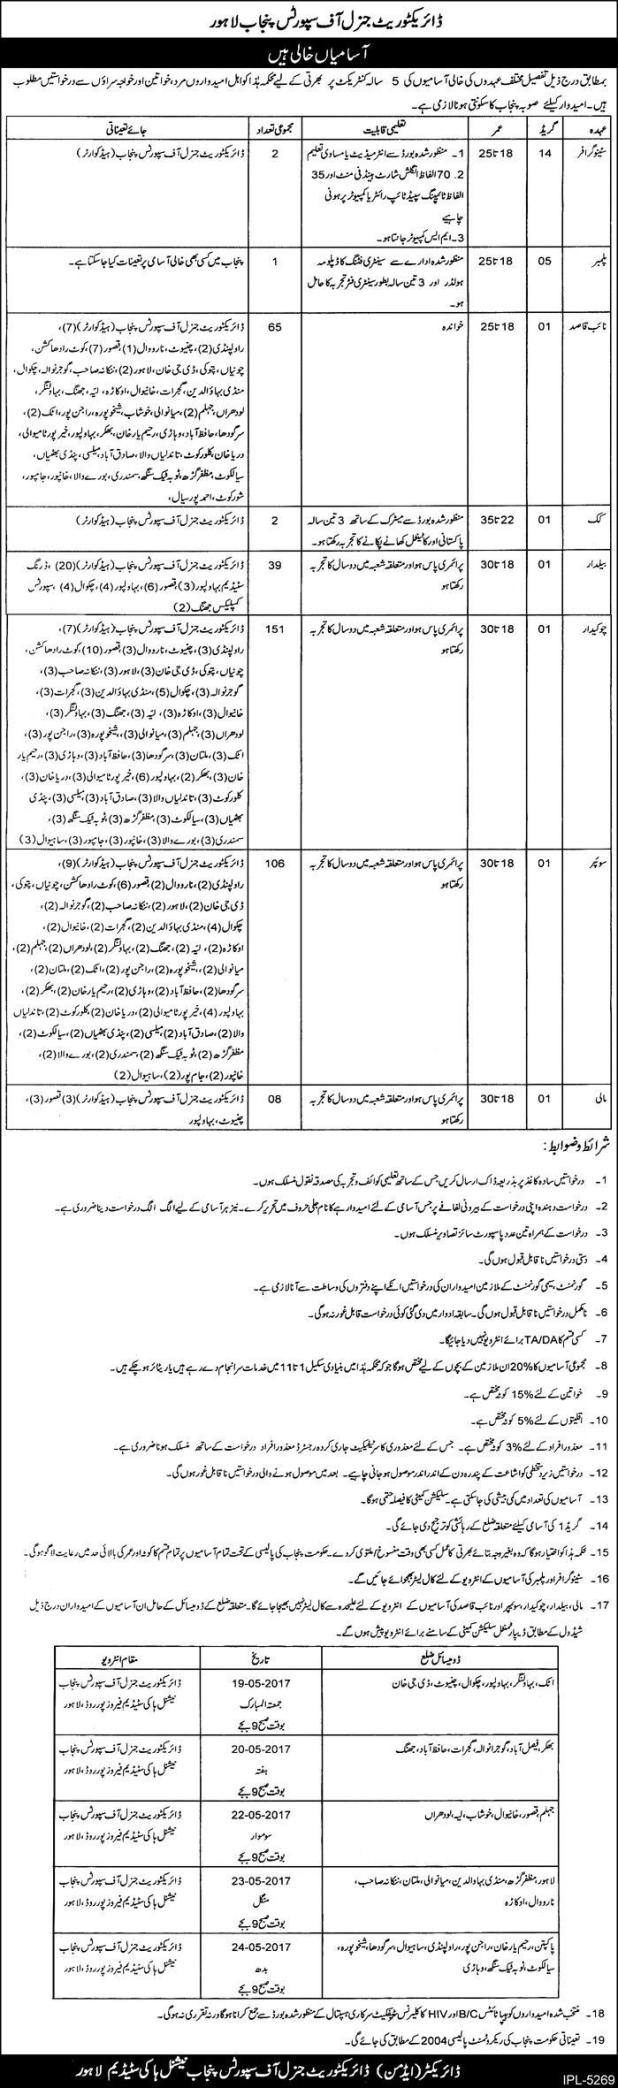 Director General of Sports Punjab Lahore Jobs 2017 on Contract Basis Interview Details and Date Quota Percentage Application Form